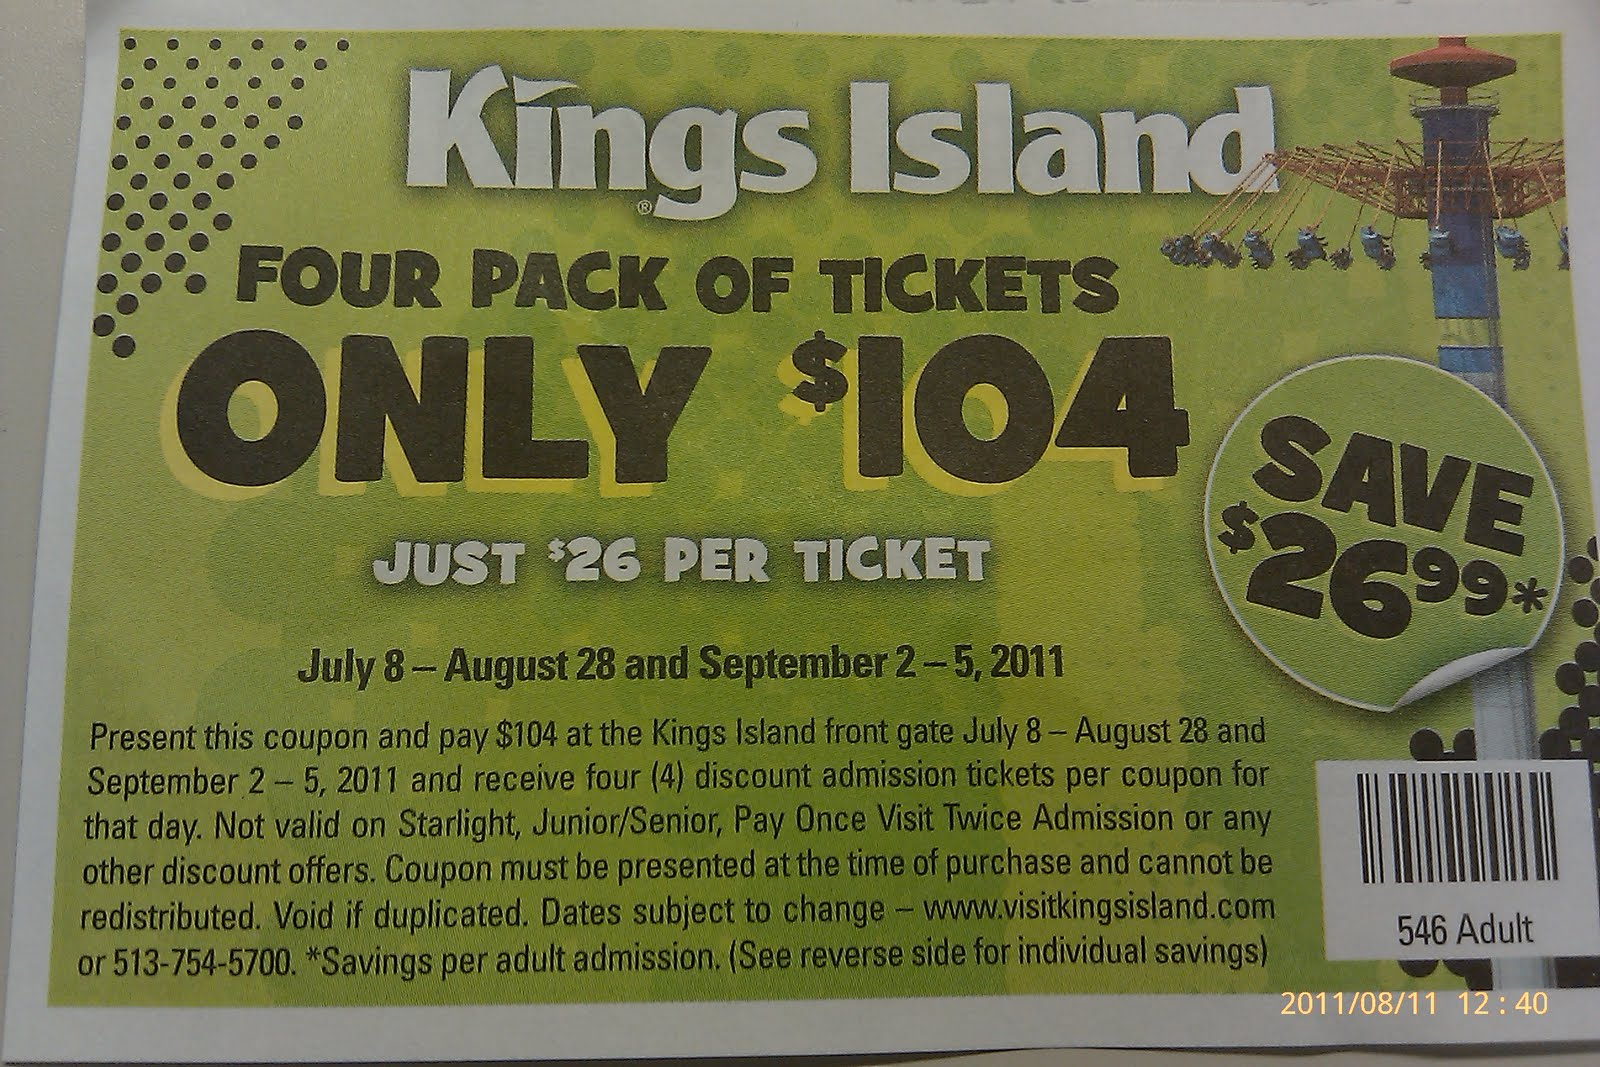 View Season Pass and single day ticket options for the perfect ticket package. Browse various park packages and see what fits best! Buy Kings Island tickets! Skip to Main Content. Kings Island Tickets and Season Passes. Close. Winterfest ; WinterFest Tickets As Low As $ Exclusive benefits and discounts. The best way to experience.